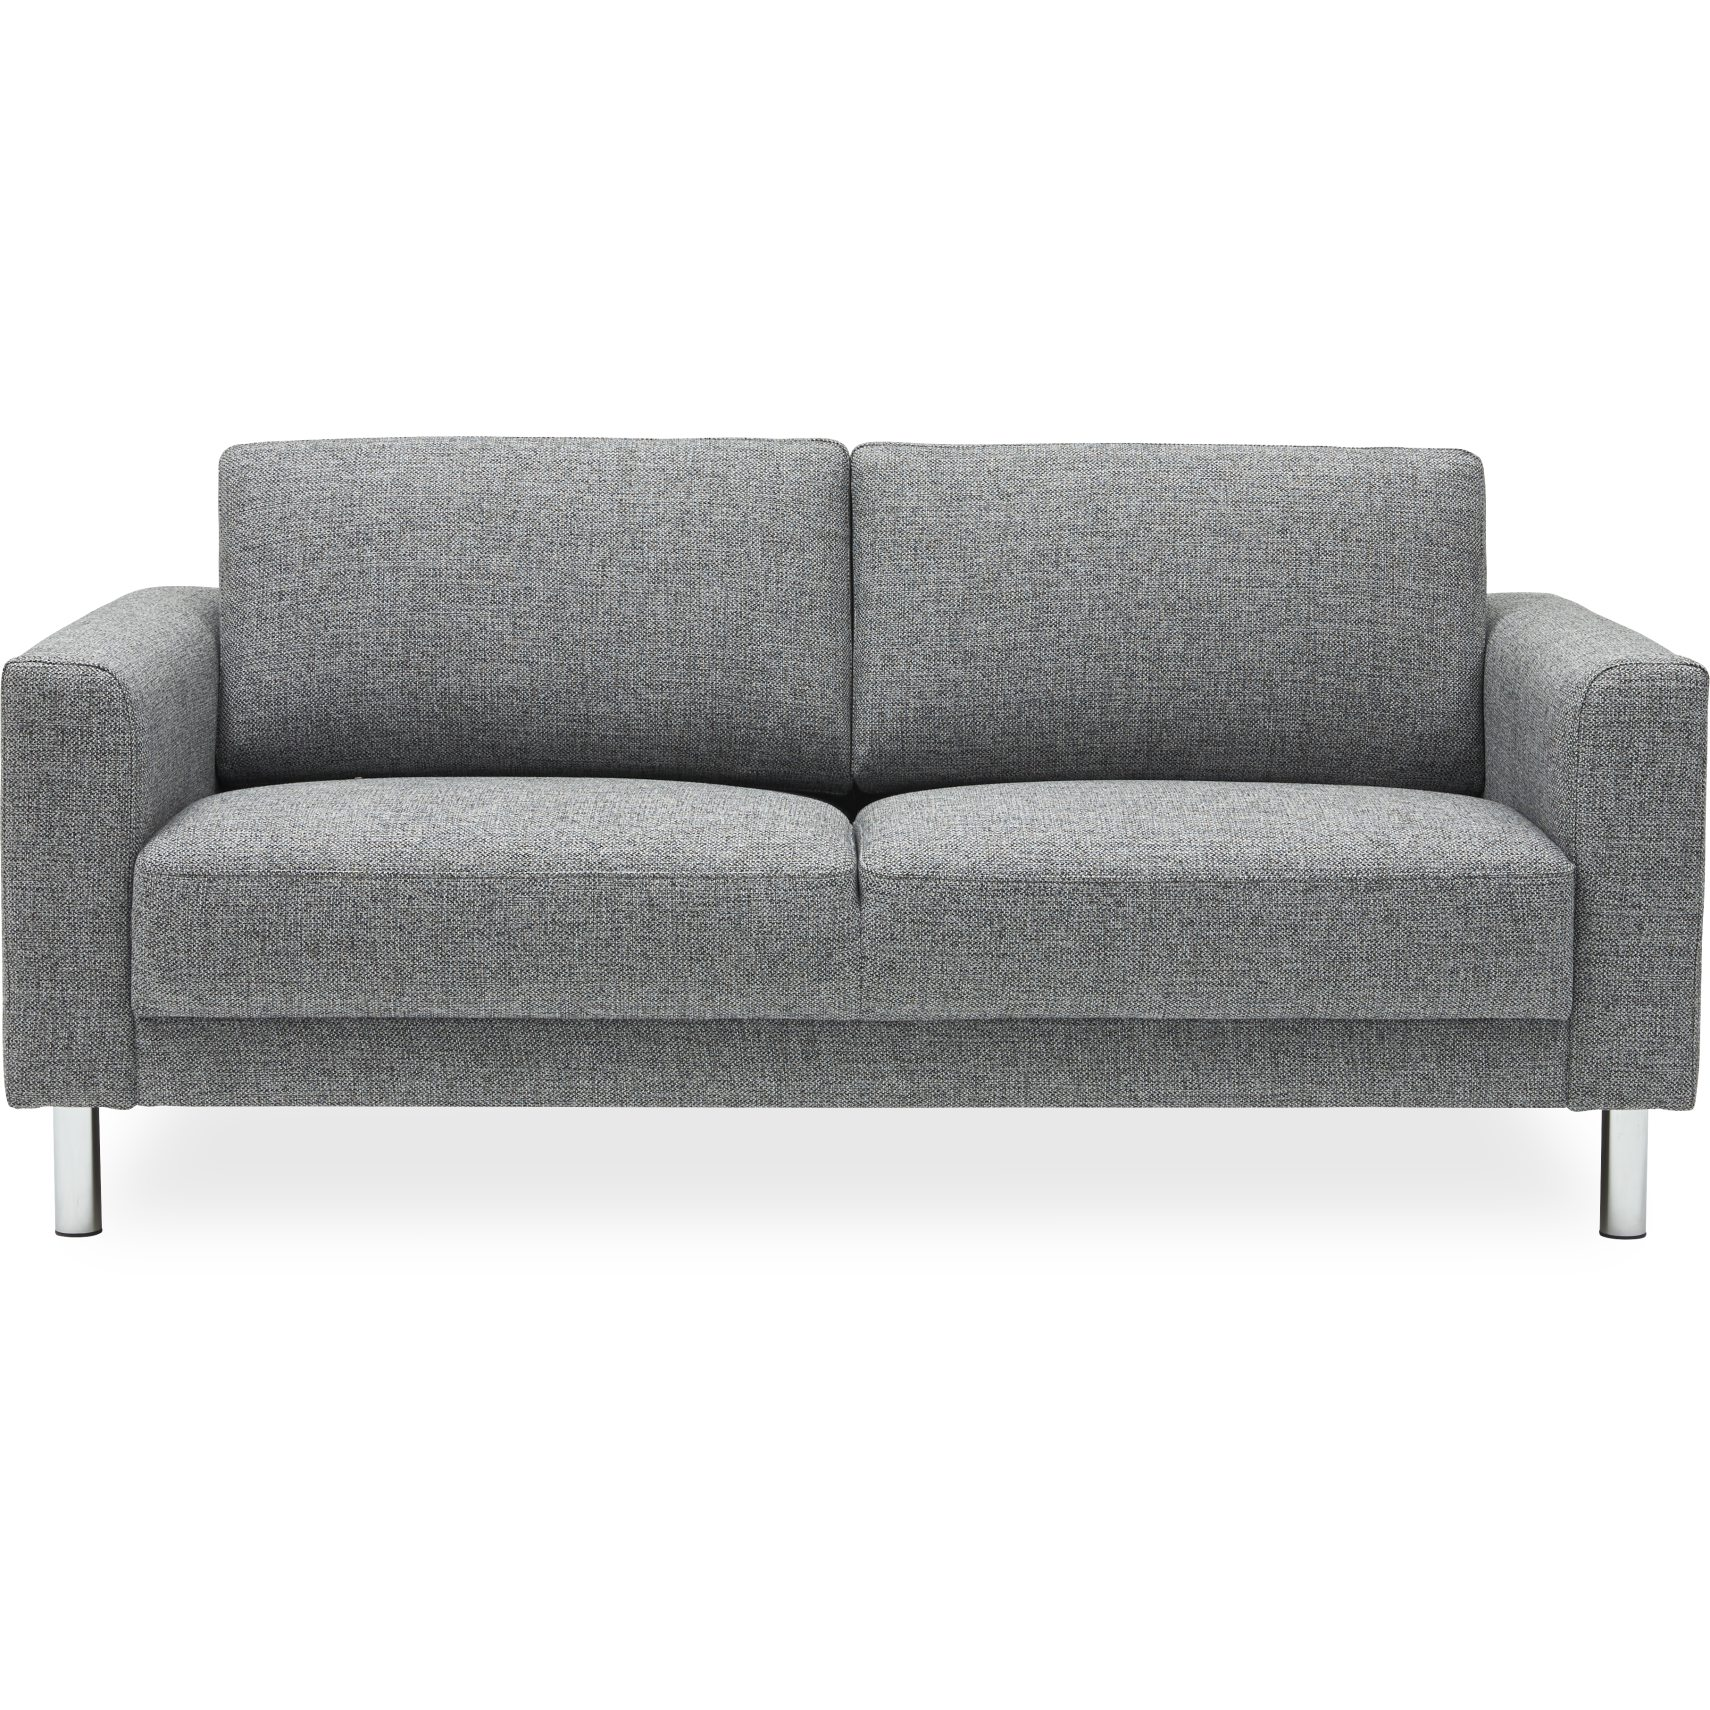 Cleveland 2 pers. Sofa